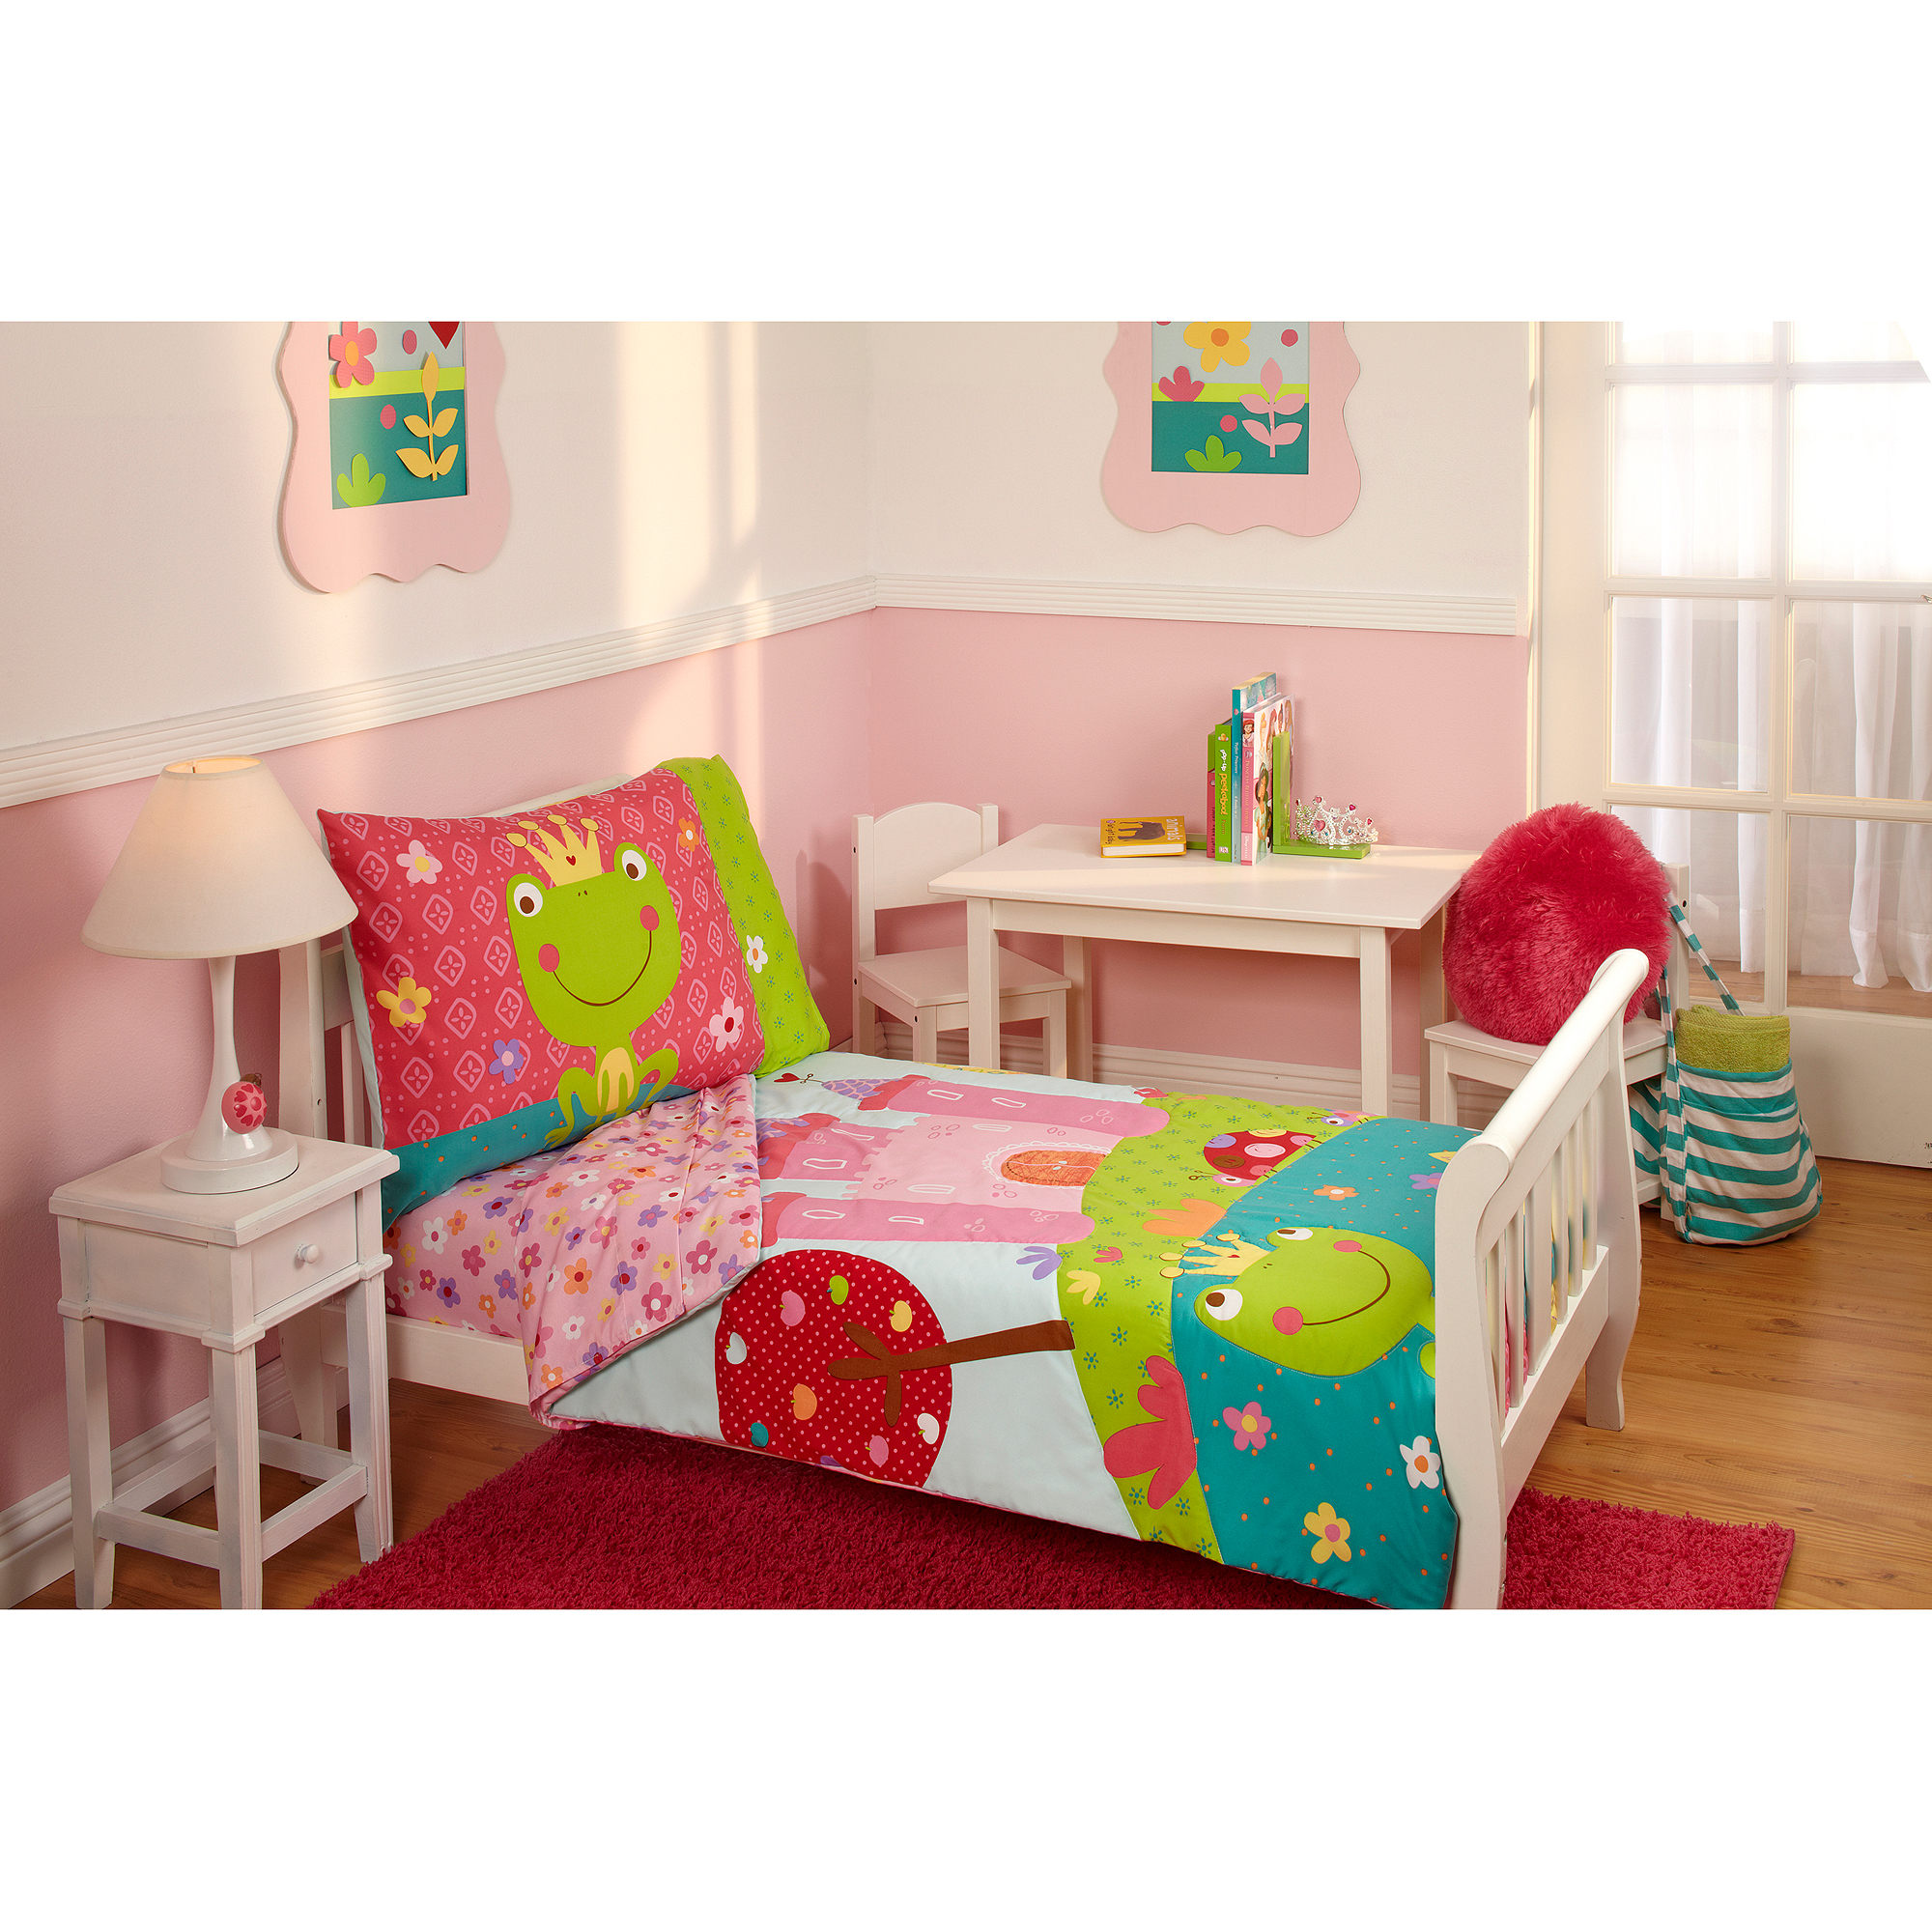 Everything Kids Fairytale 3-Piece Toddler Bedding Set with BONUS Matching Pillow Case